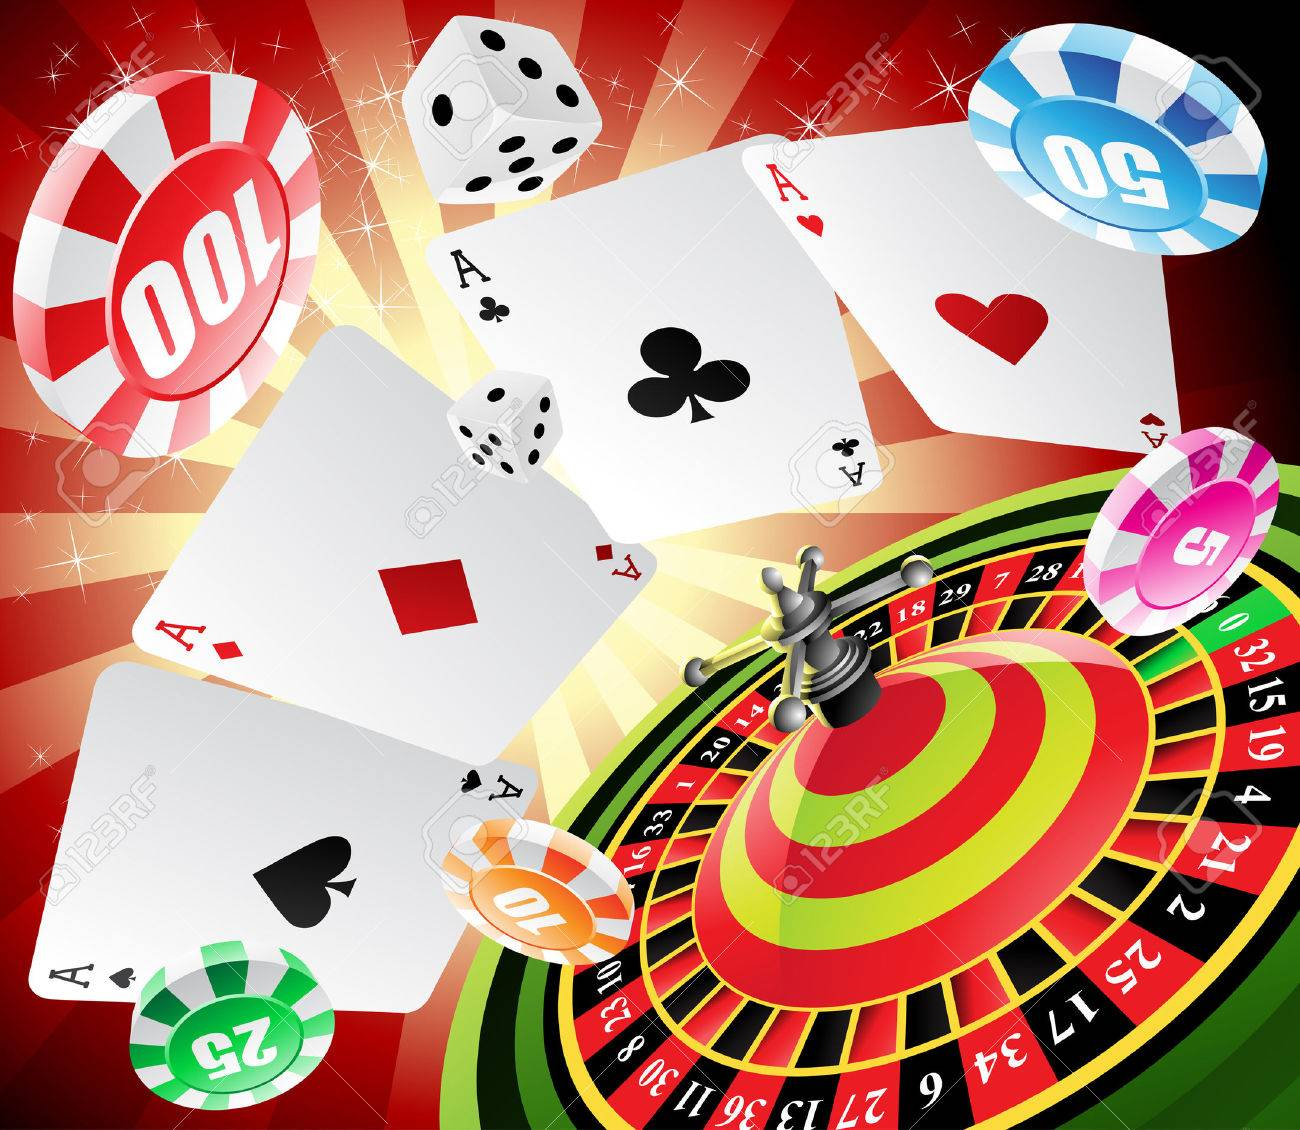 a roulette table with various gambling and casino elements Stock Vector - 4806432